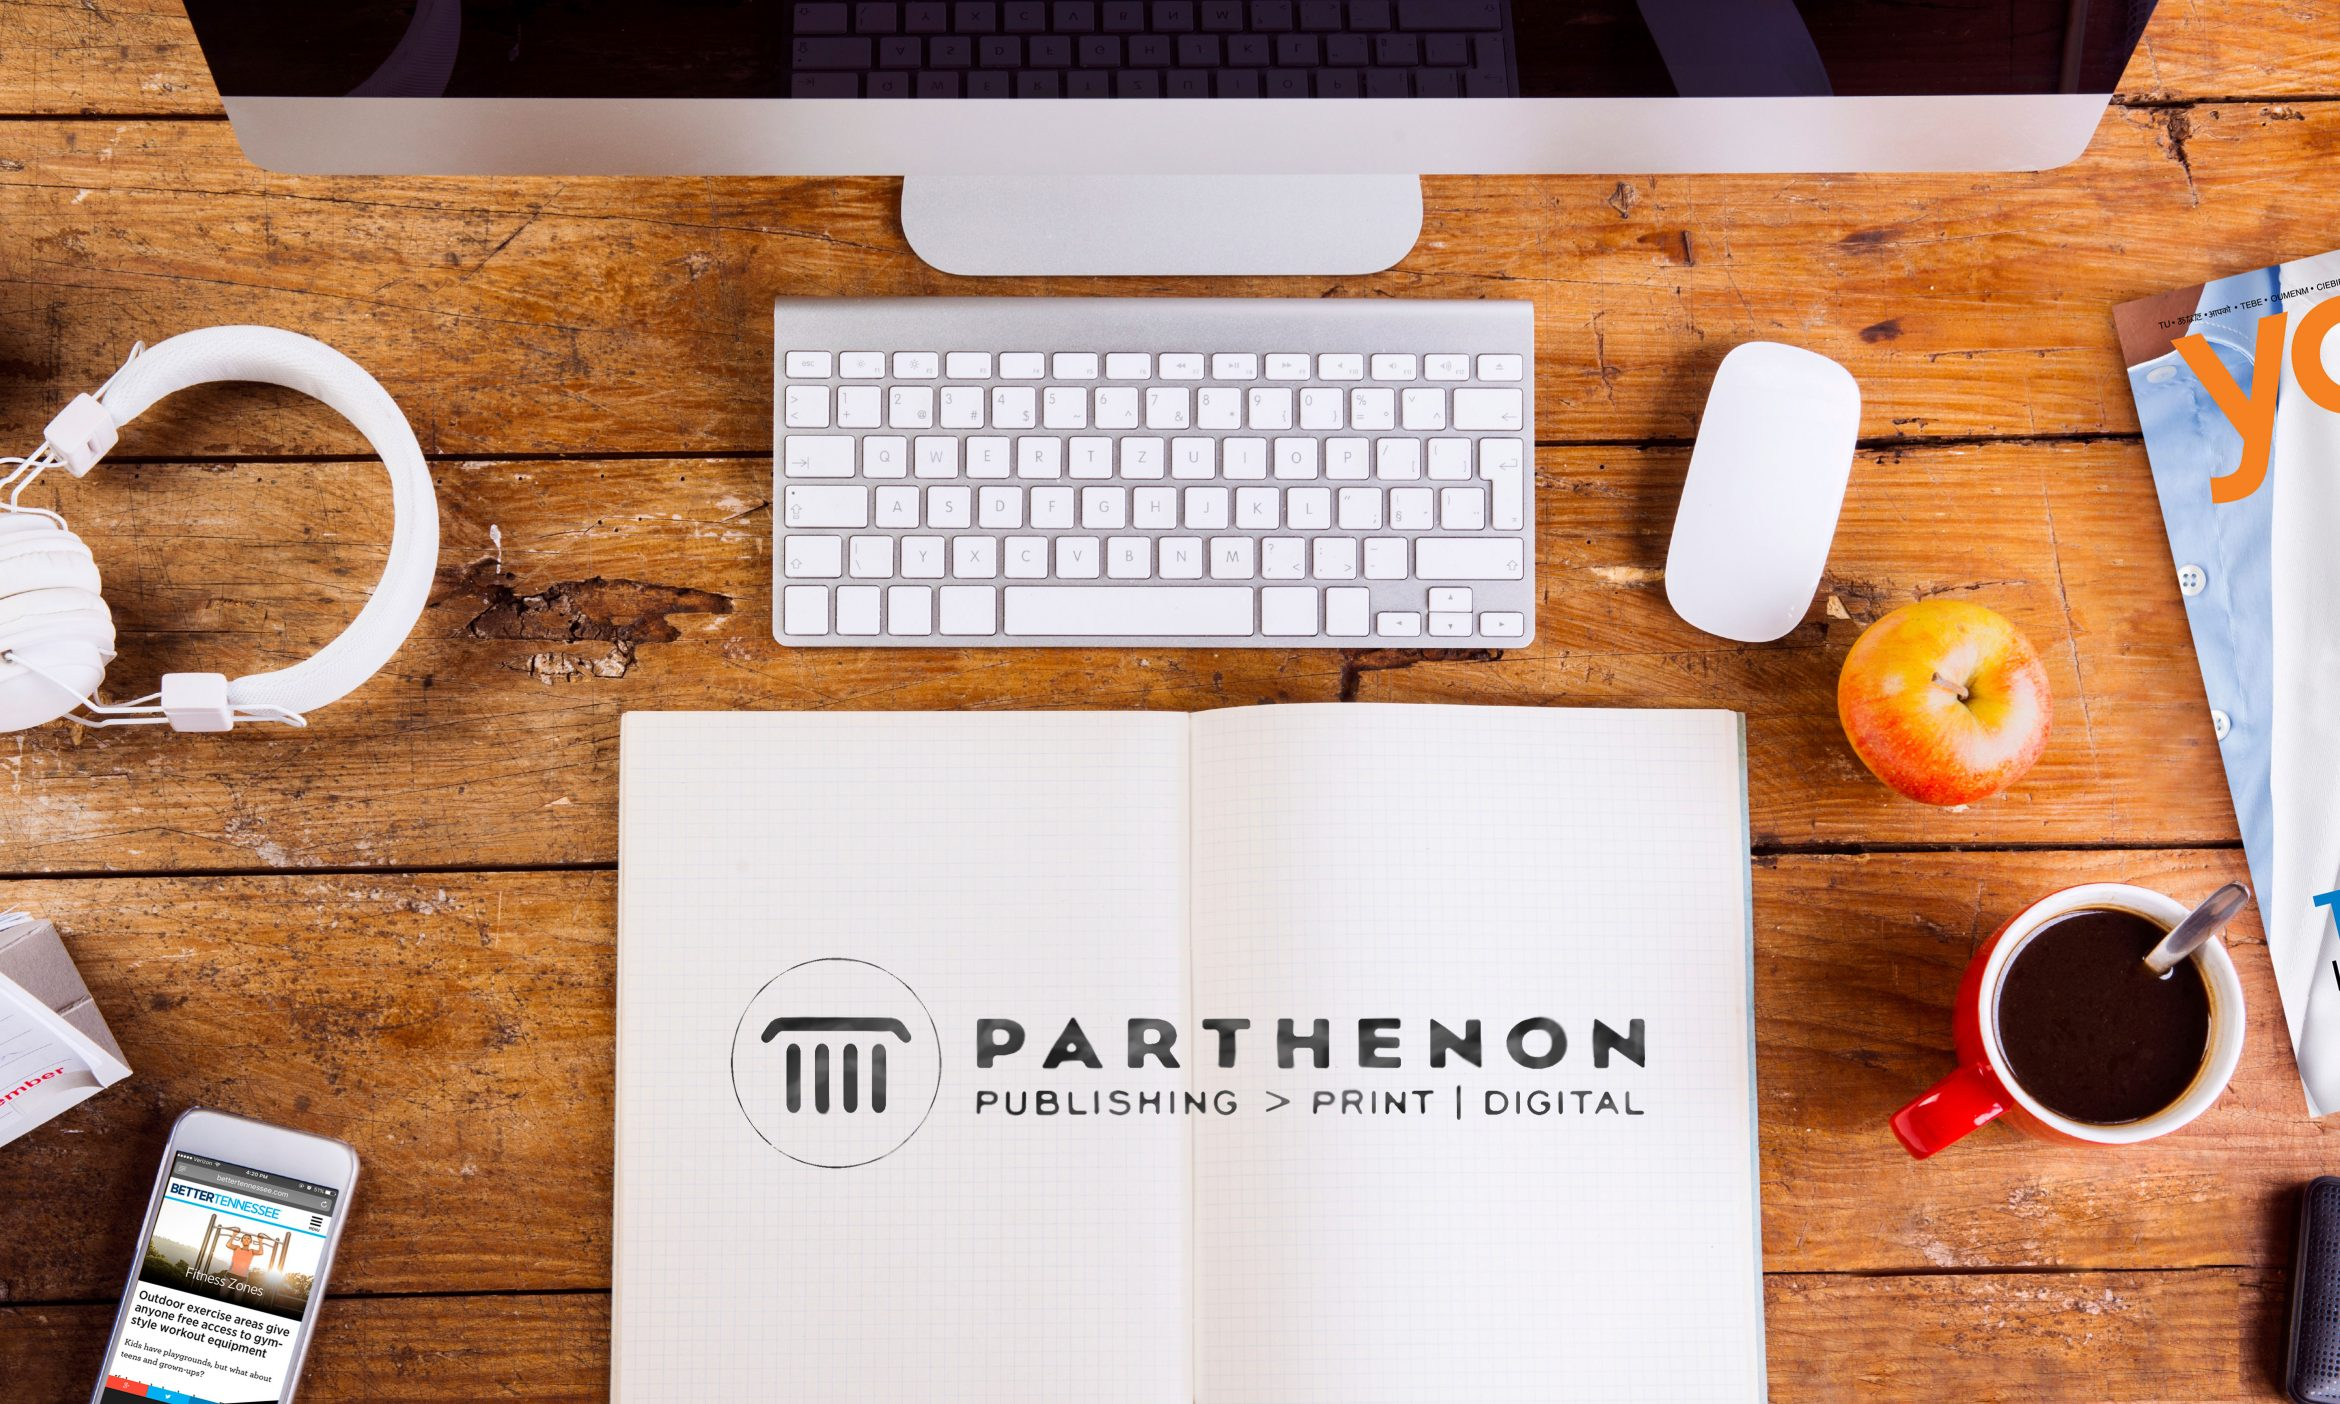 Computer, smart phone and stationery on a work surfaced branded with Parthenon Publishing's logo